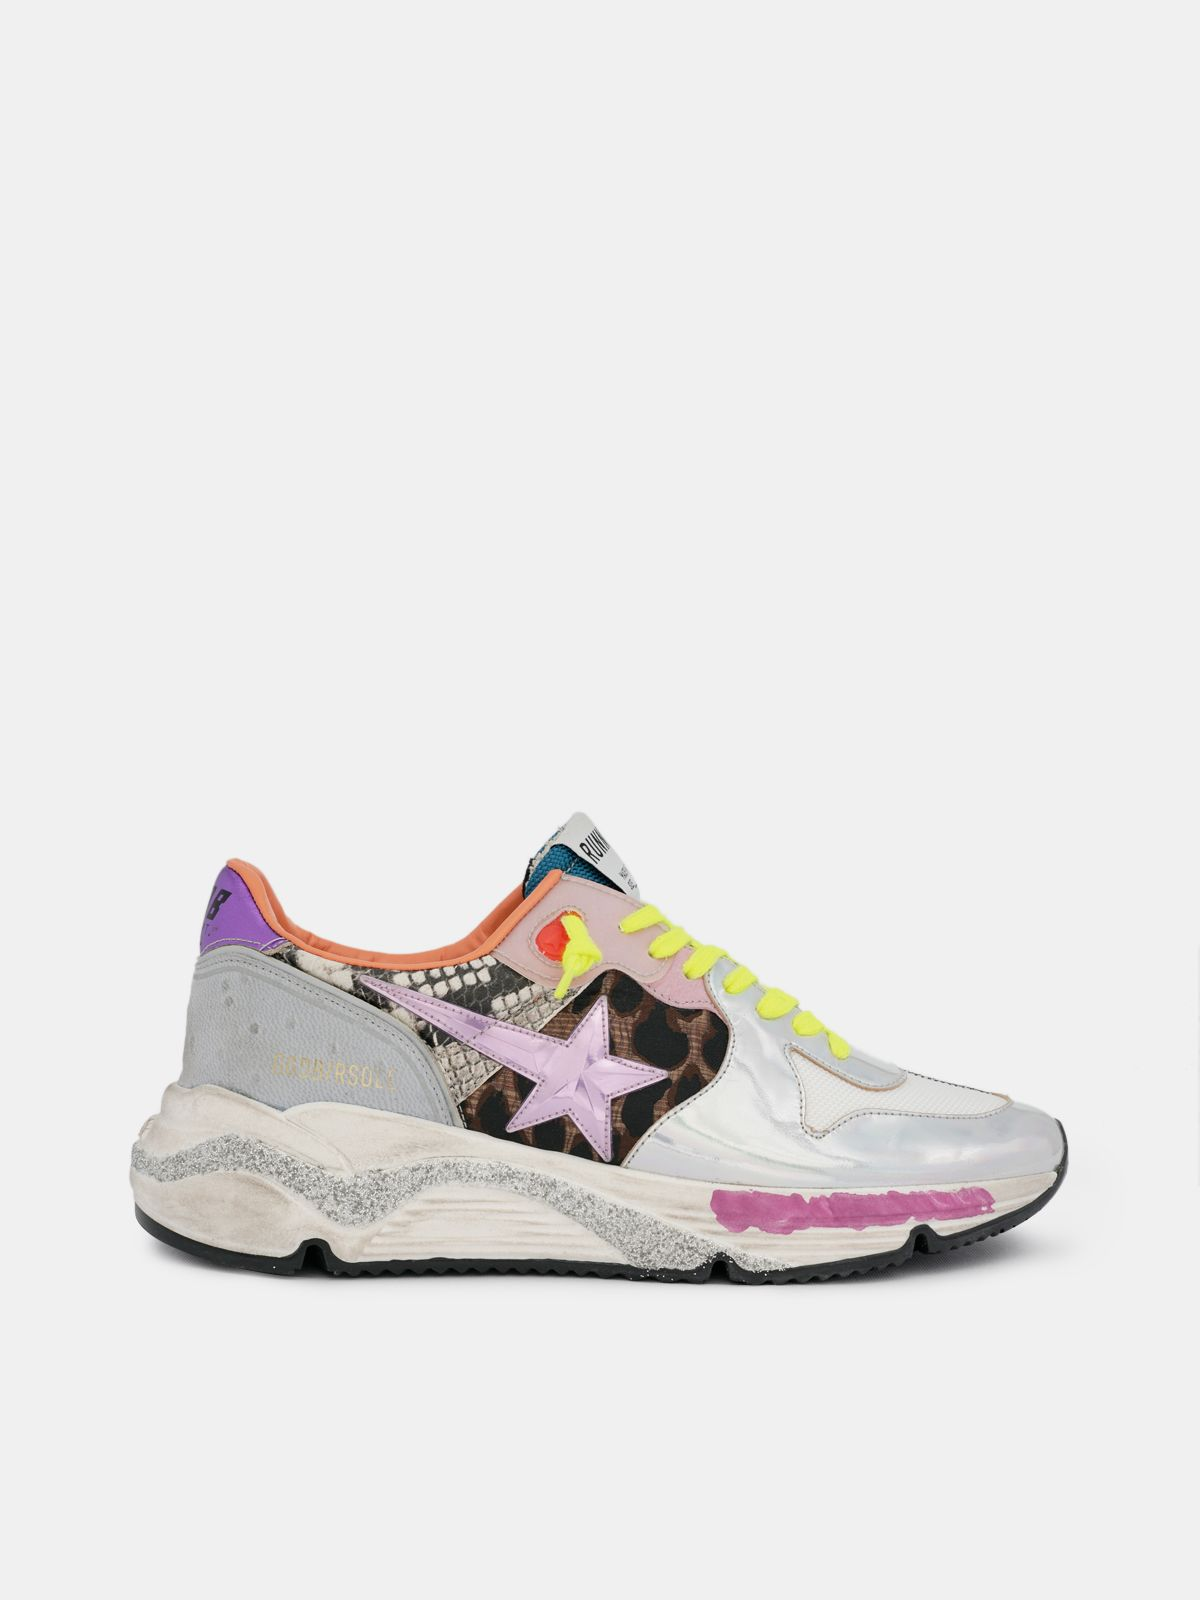 Golden Goose - Holographic Running Sole sneakers with animal-print inserts in